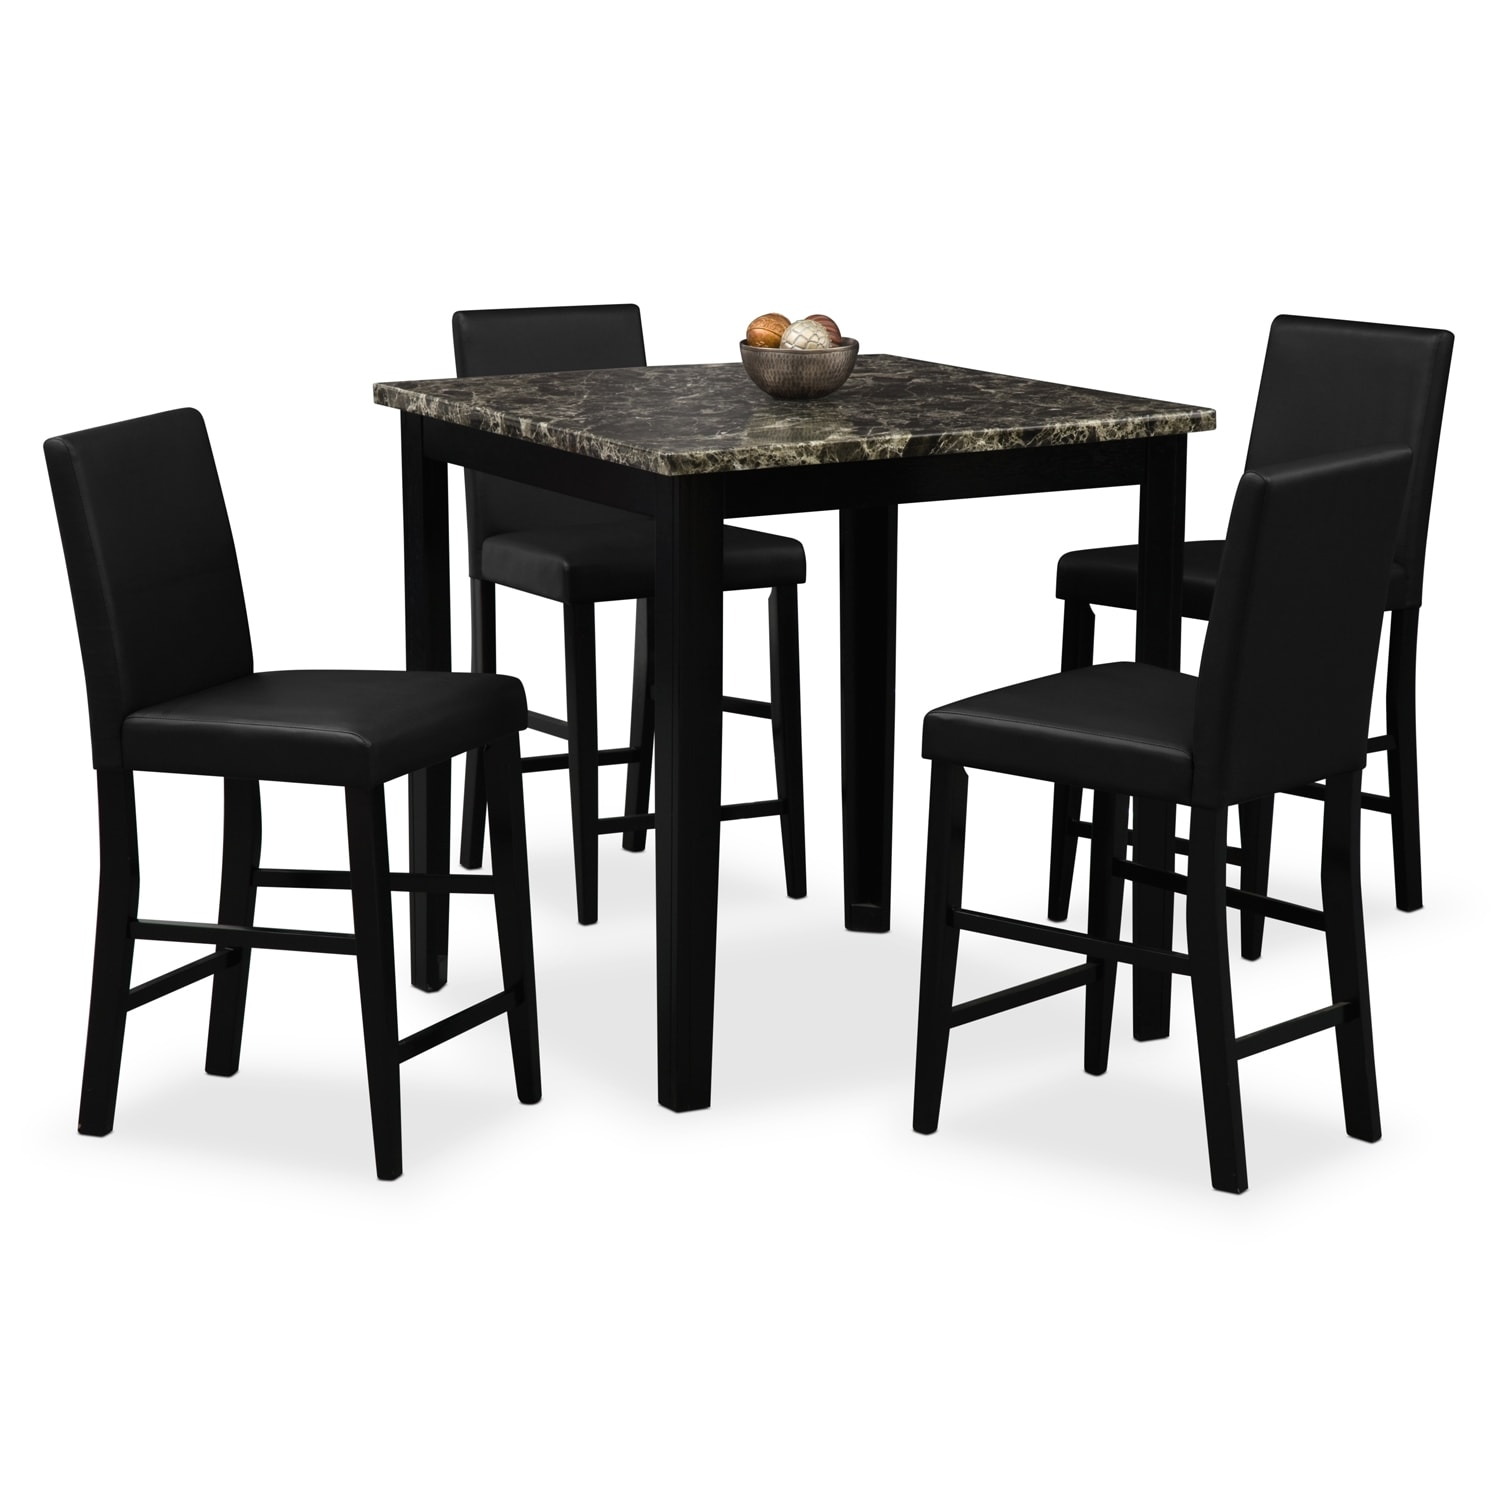 Shadow counter height table and 4 chairs black value for Dining room table chairs